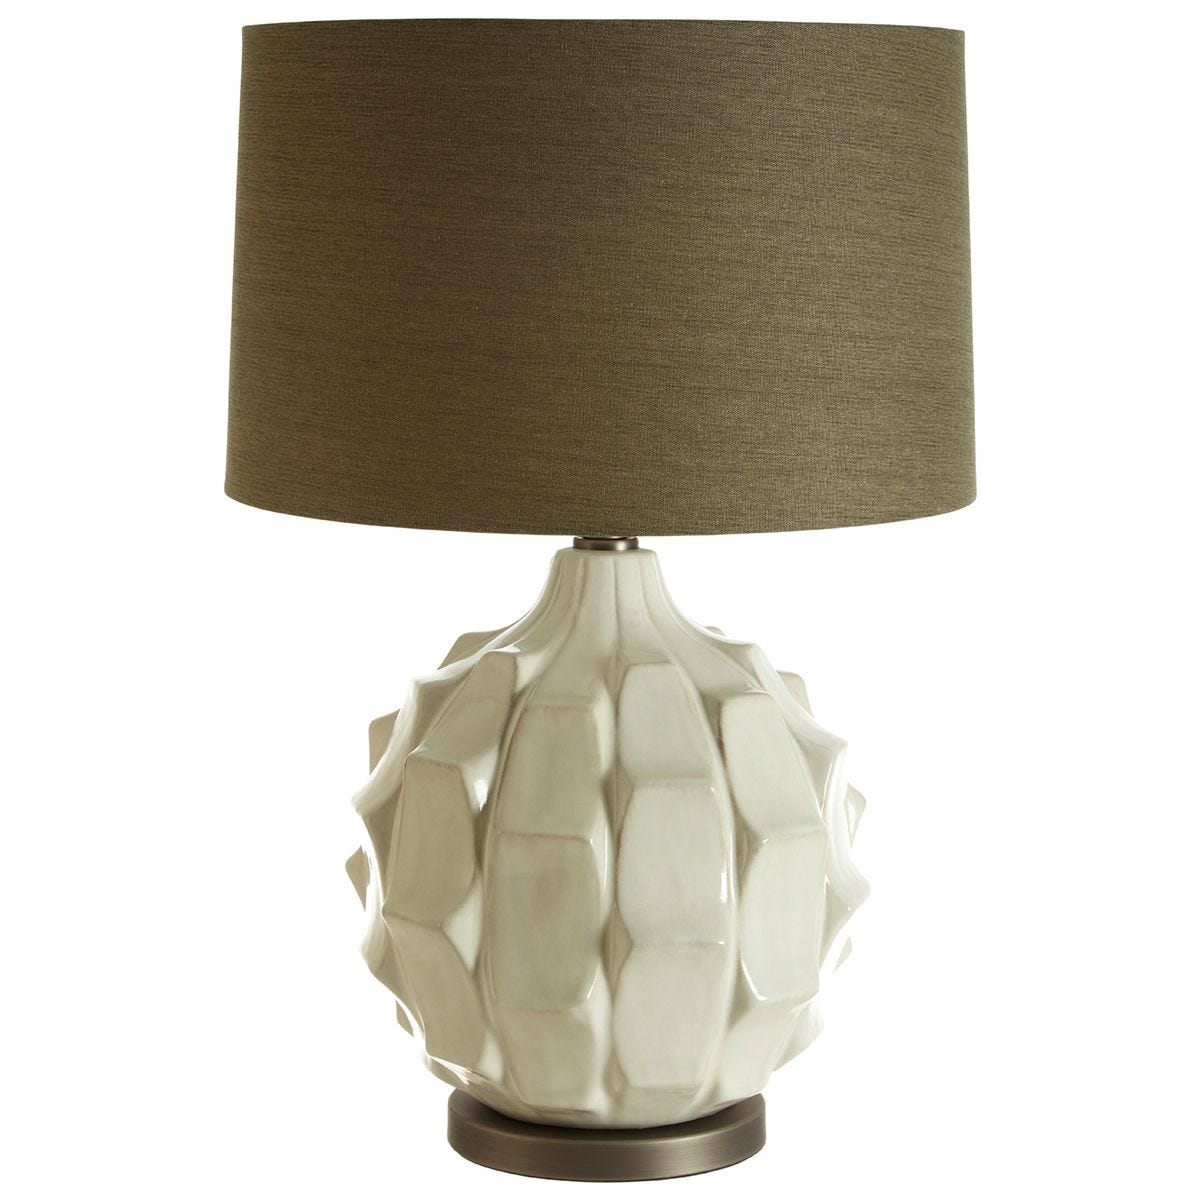 Premier Housewares Usha Table Lamp with Brown/Grey Linen Shade